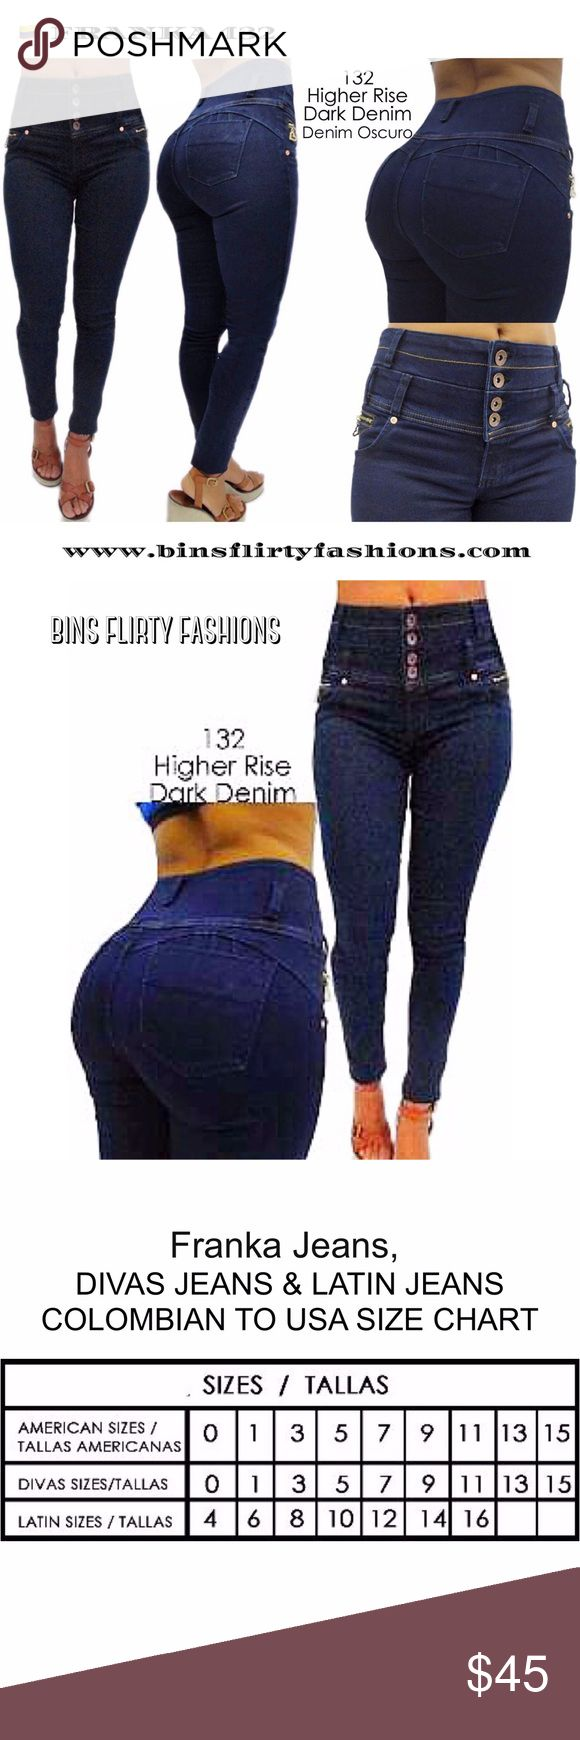 FRANKS JEANS 0132 FRANKA JEANS 132  Skinny Higher Rise Dark Blue   Horma Perfecta Azul Oscuro Tiro Mas Alto Sem Faja    Colombian Jeans sizes are EVEN numbers 6/8/10/12 etc.. Listed are the US equivalents. The size equates to 1/3/5/7/9/ etc.. the numbers are ODD but they are not a Juniors size. These jeans are made to hug your curves and fit like a glove. FRANKA JEANS Jeans Skinny